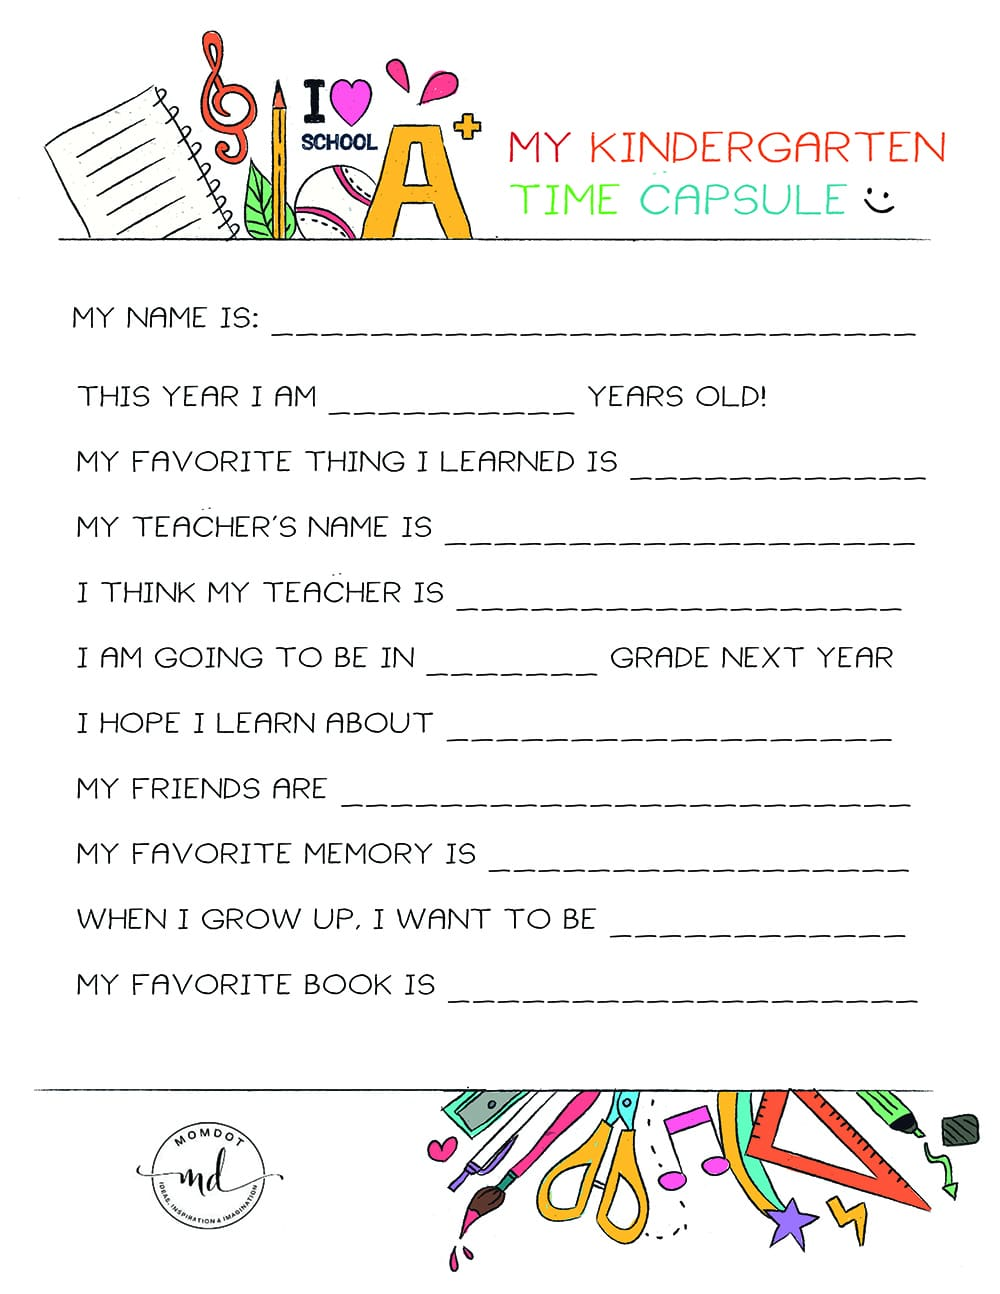 photograph regarding Time Capsule Printable identify Kindergarten Season Capsule Absolutely free PRINTABLE -